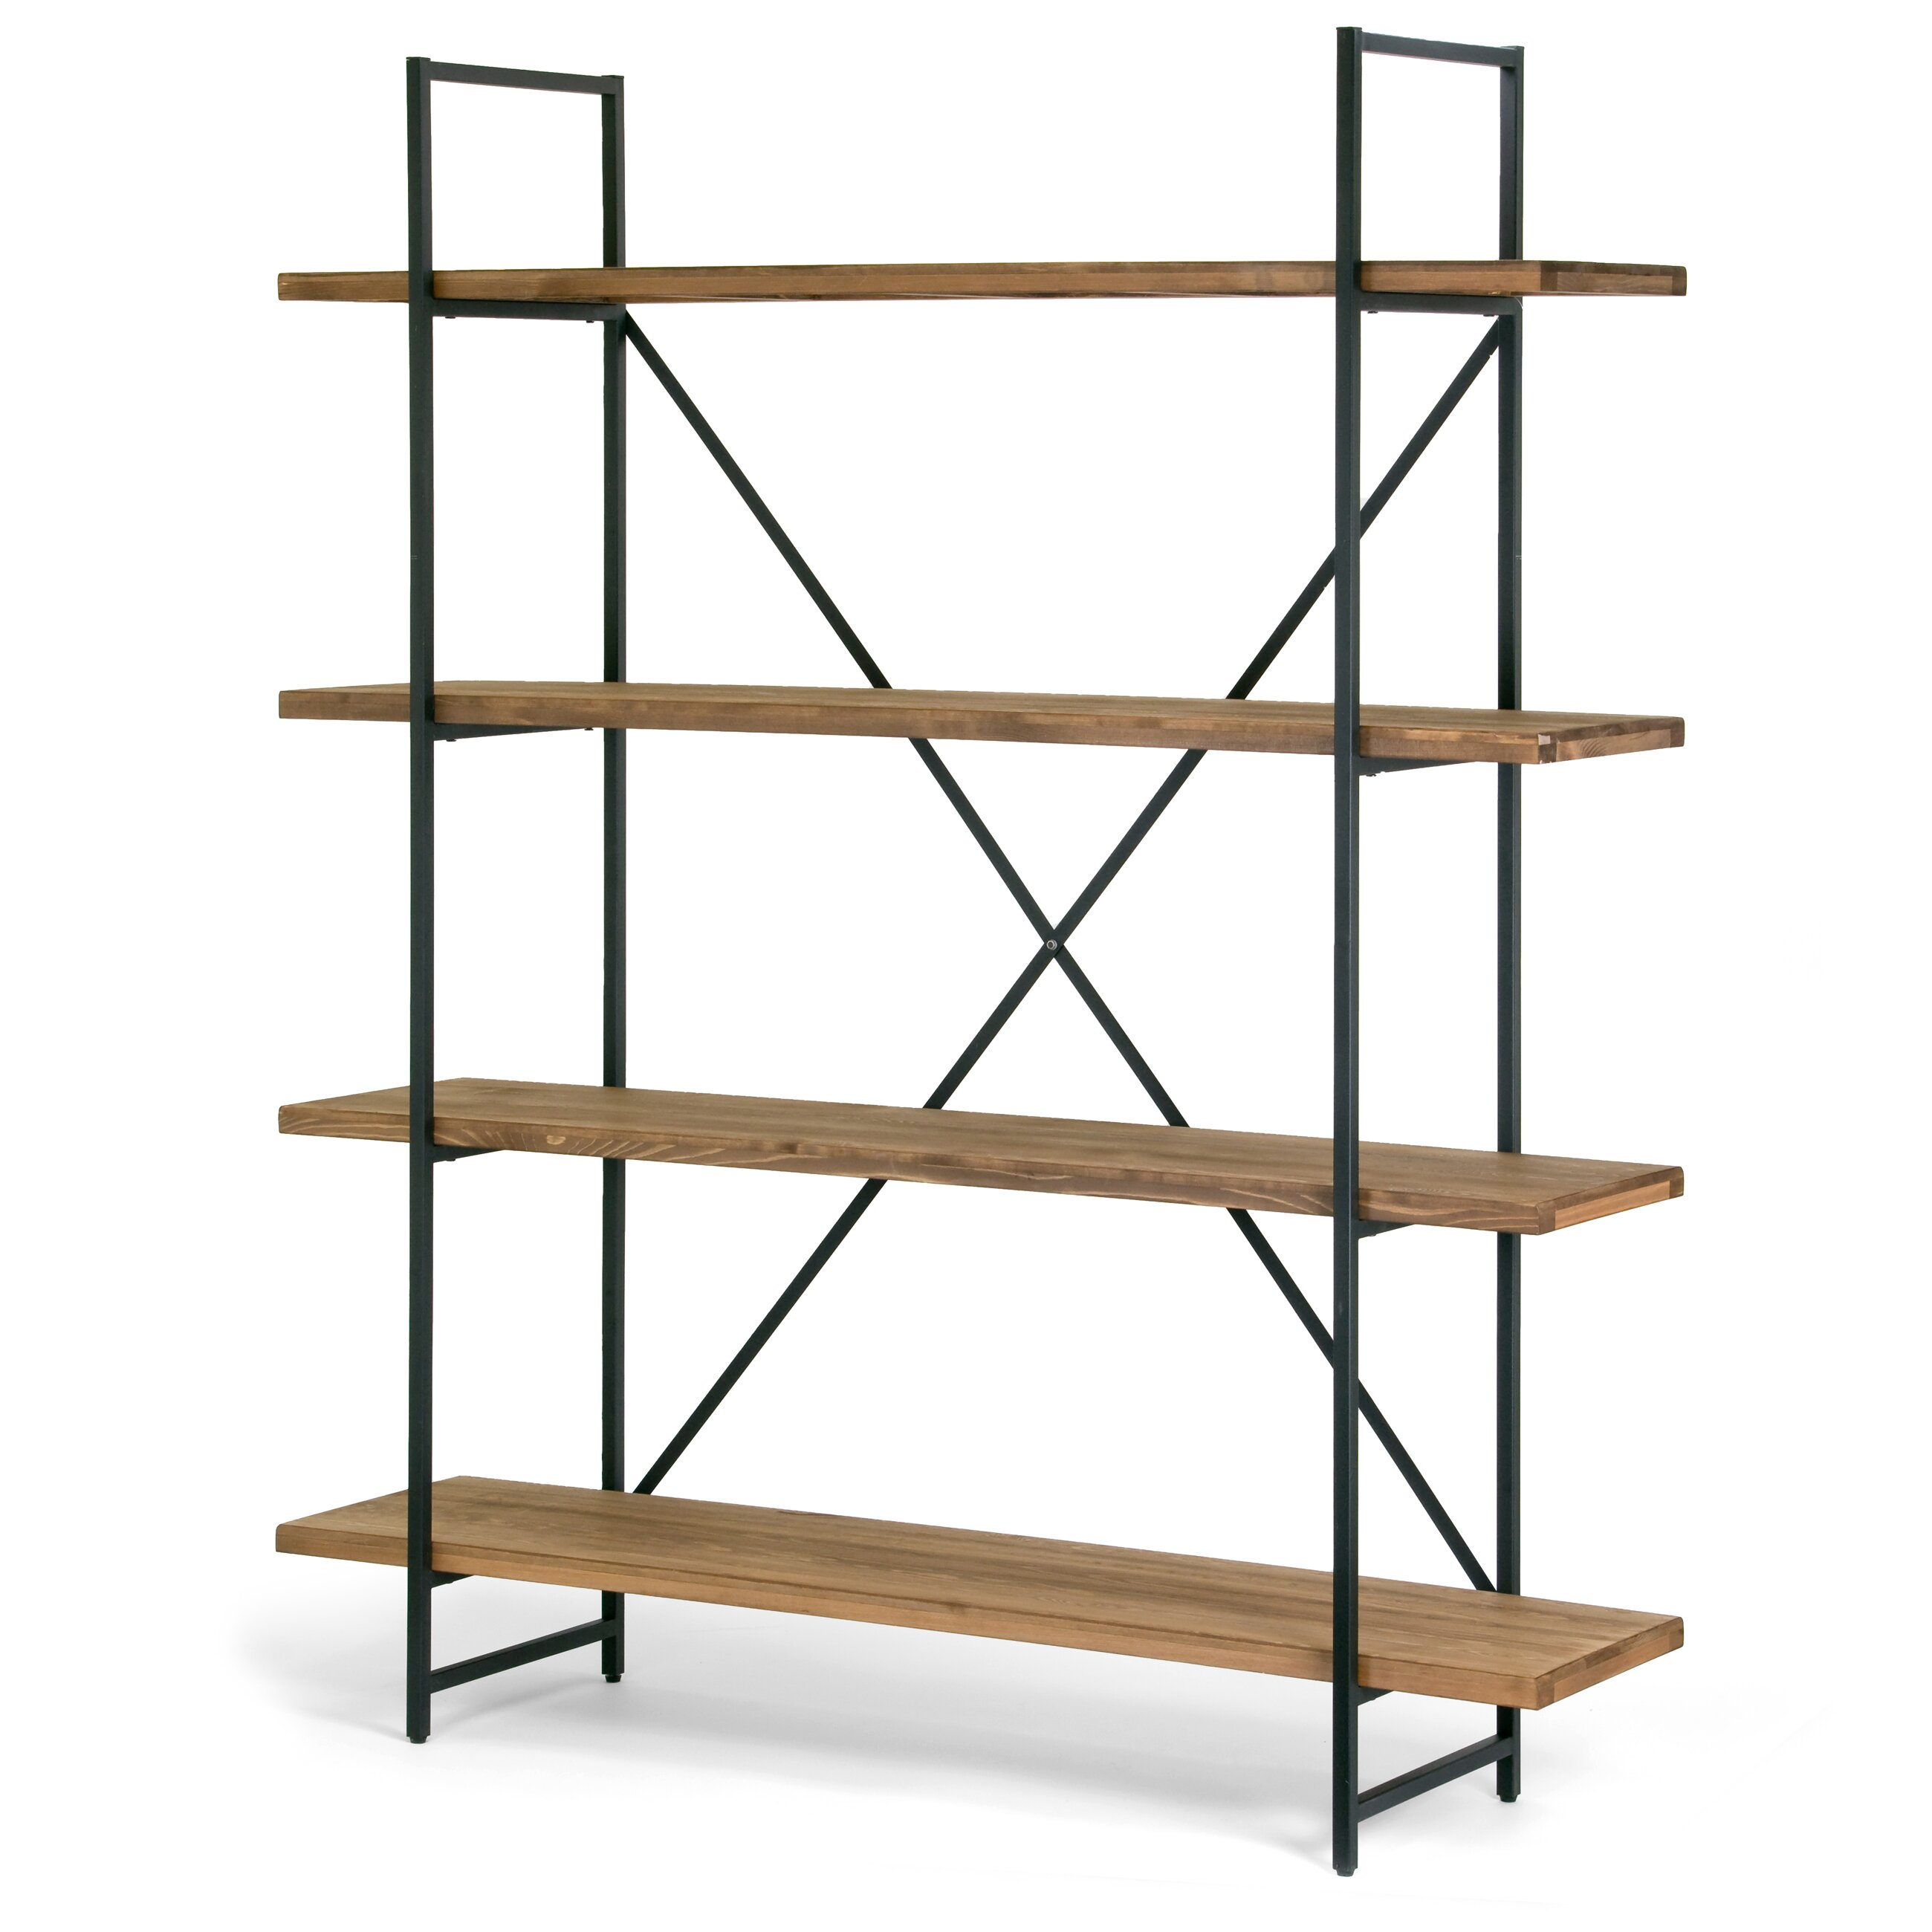 Glamour home decor ailis 75 etagere bookcase reviews for Decoration murale wayfair